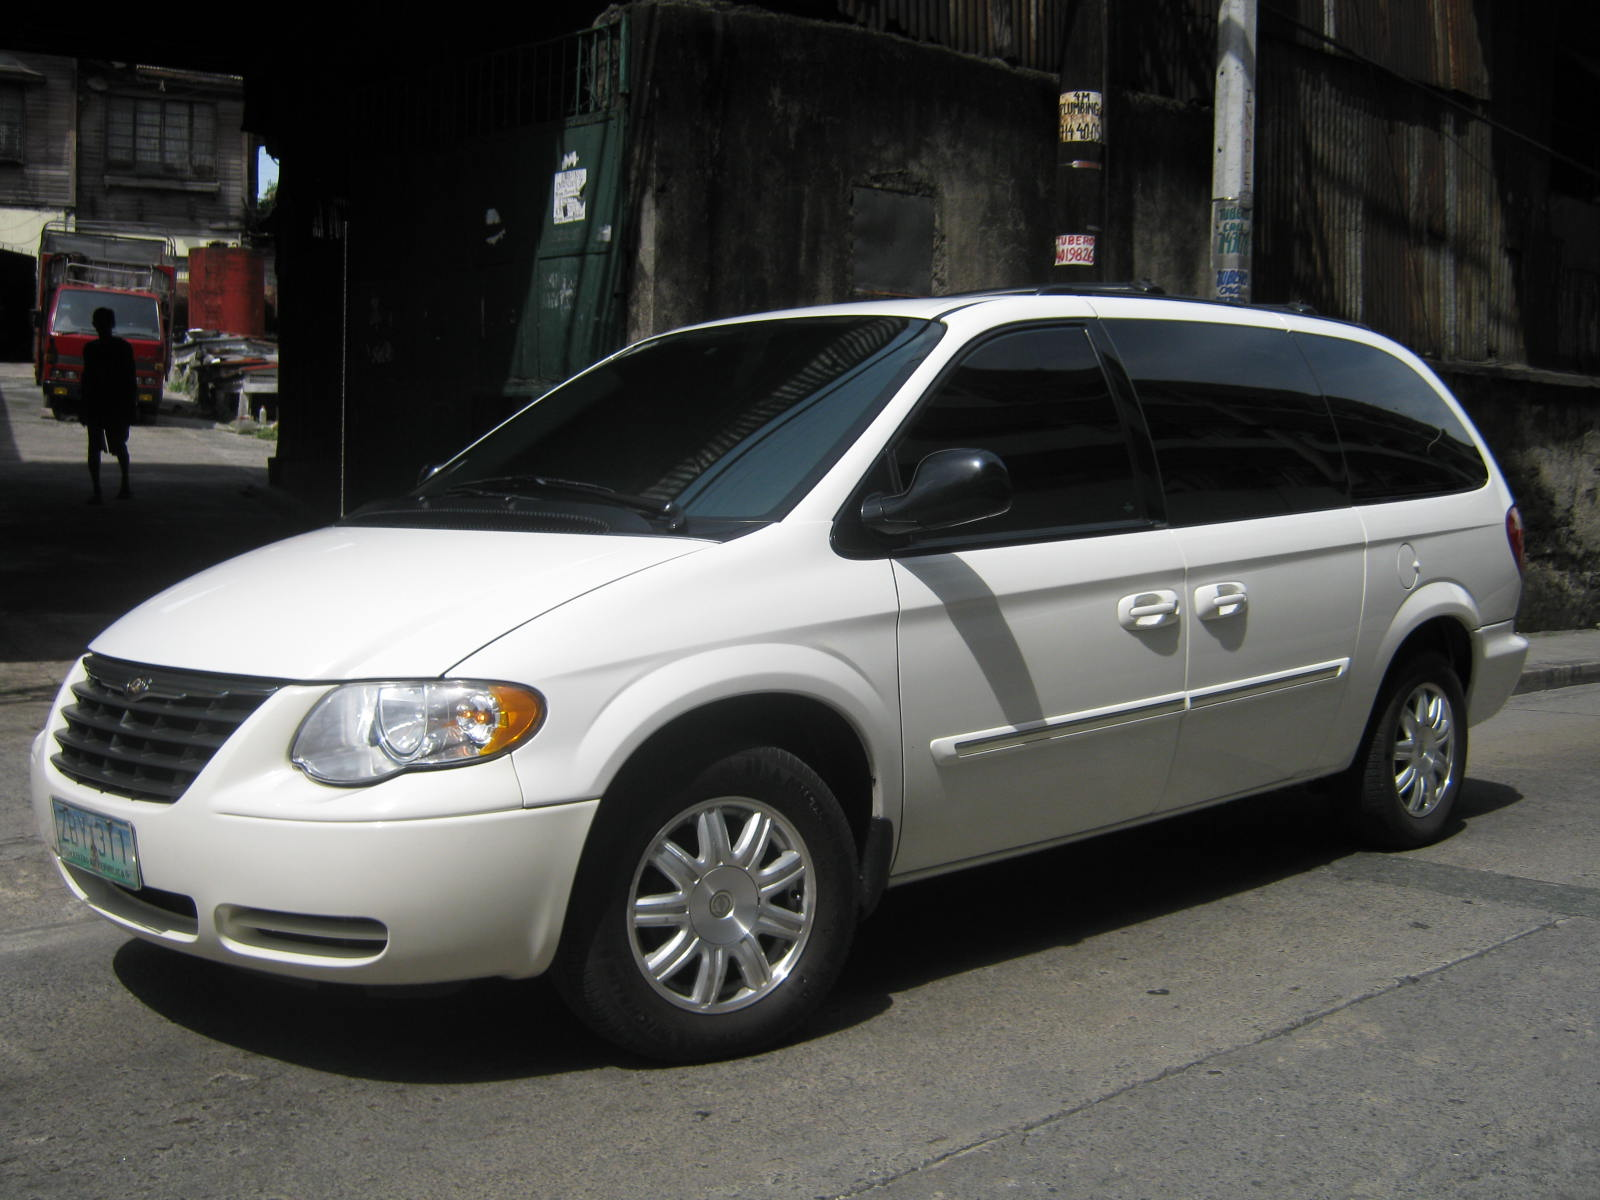 chrysler town & country 3.8 #4